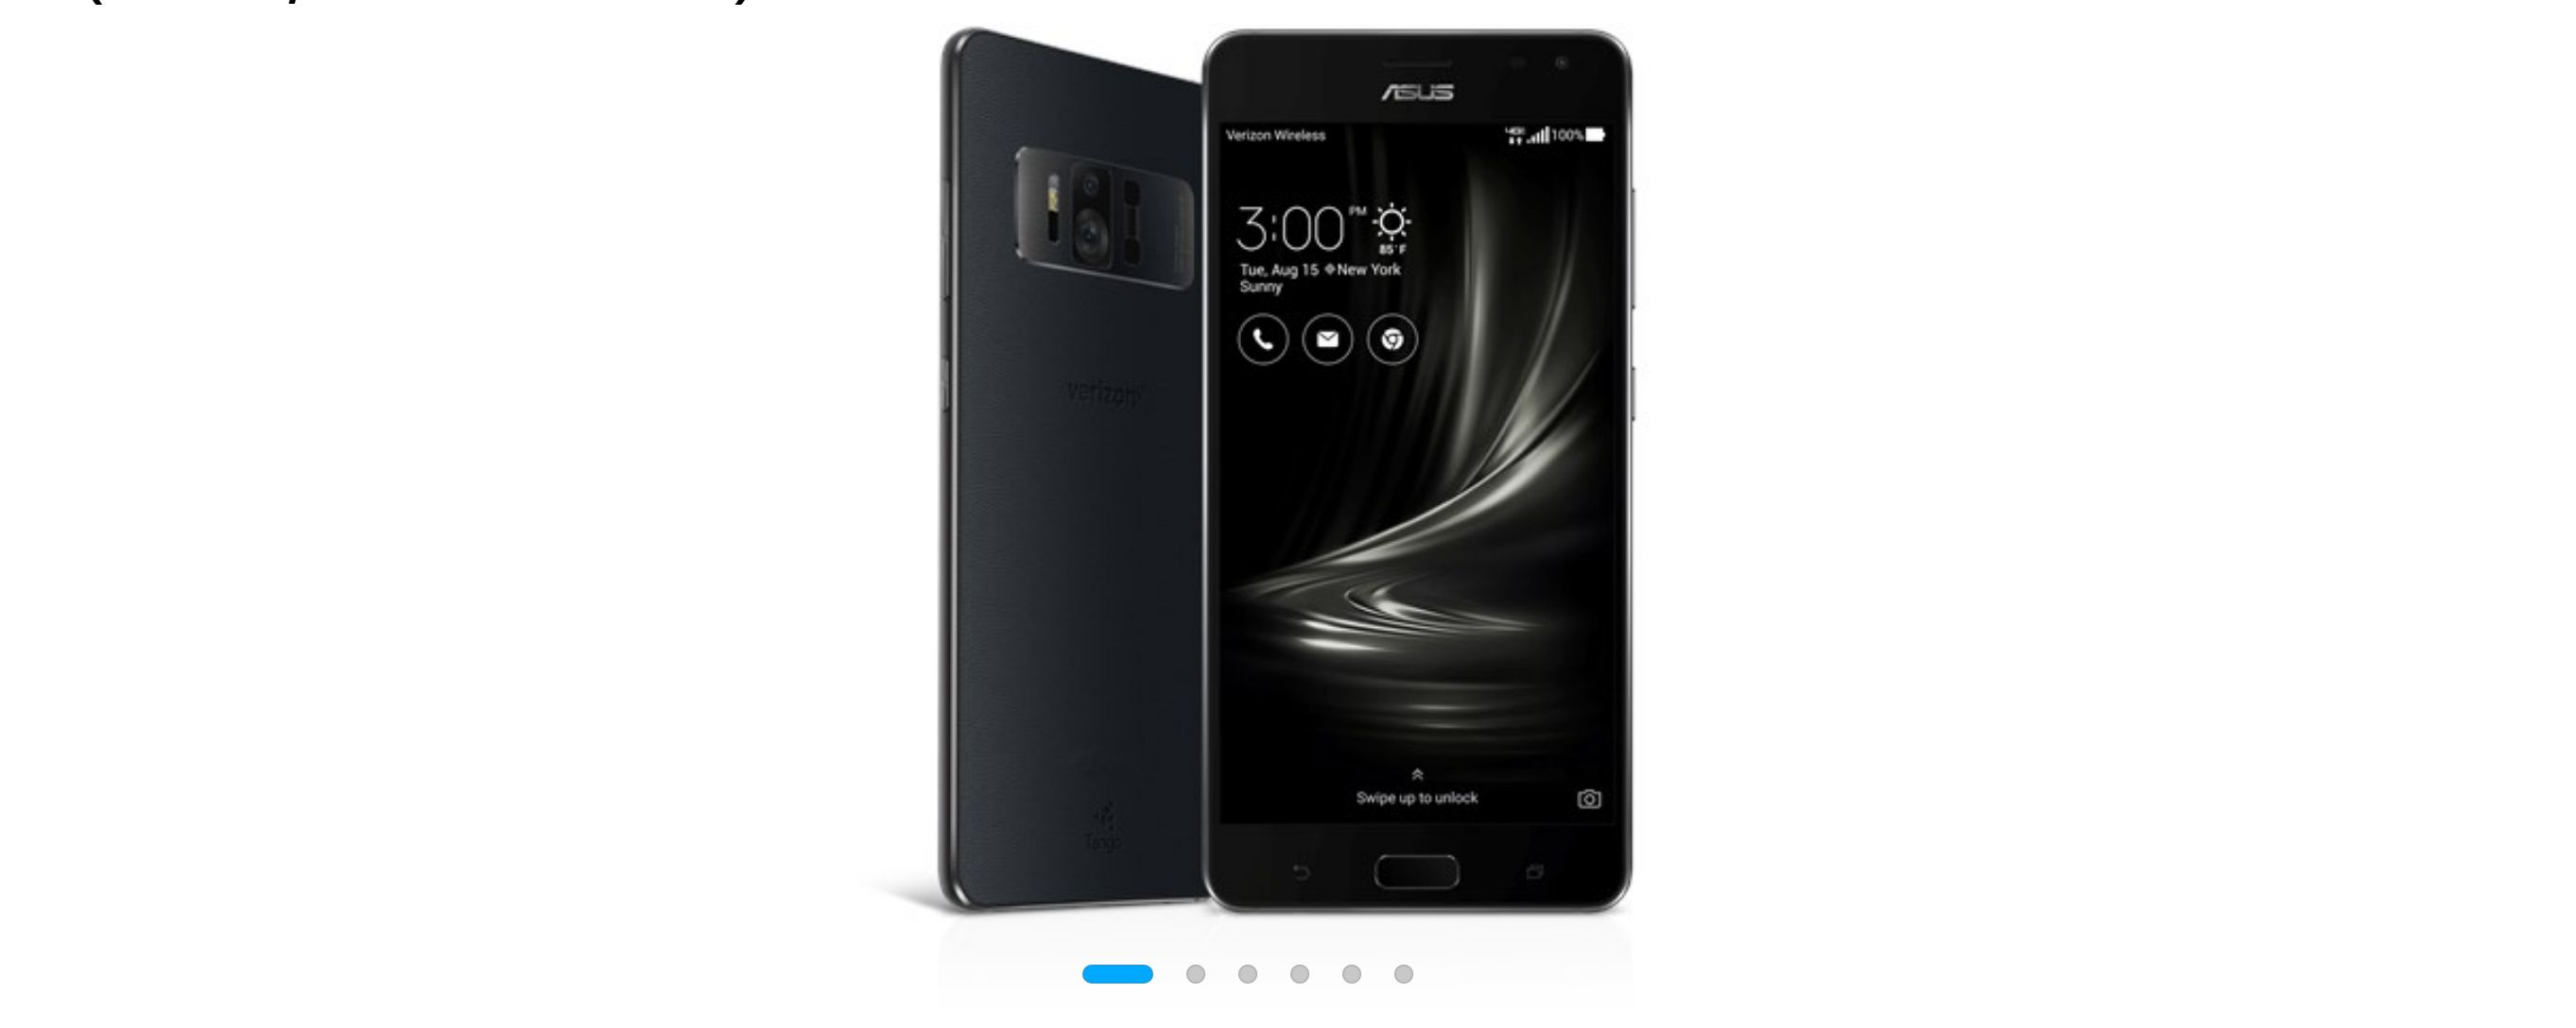 Asus ZenFone AR in black, front and back view